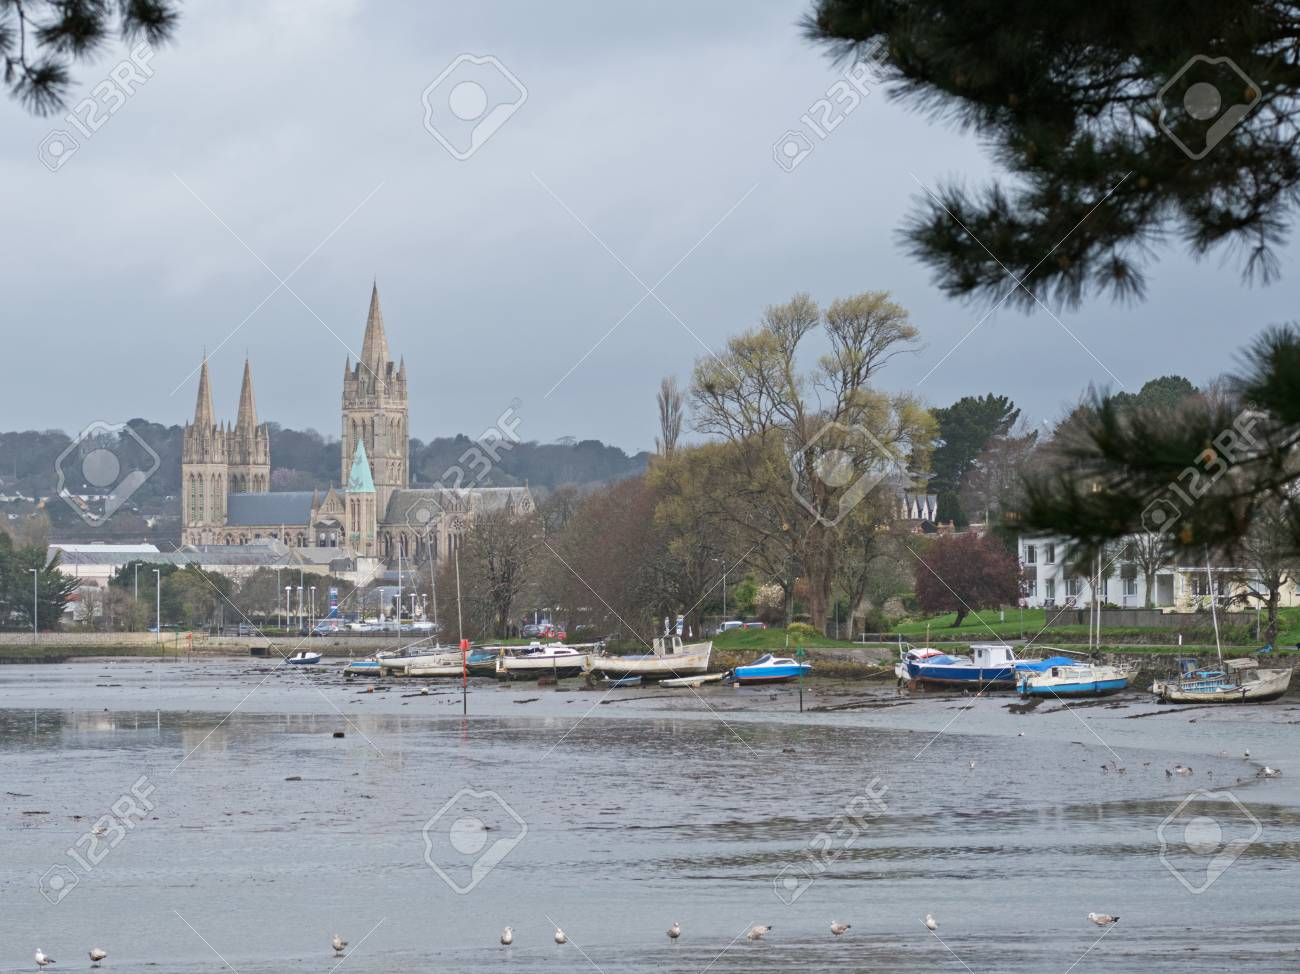 The cathedral and riverside moorings in Truro city with the river